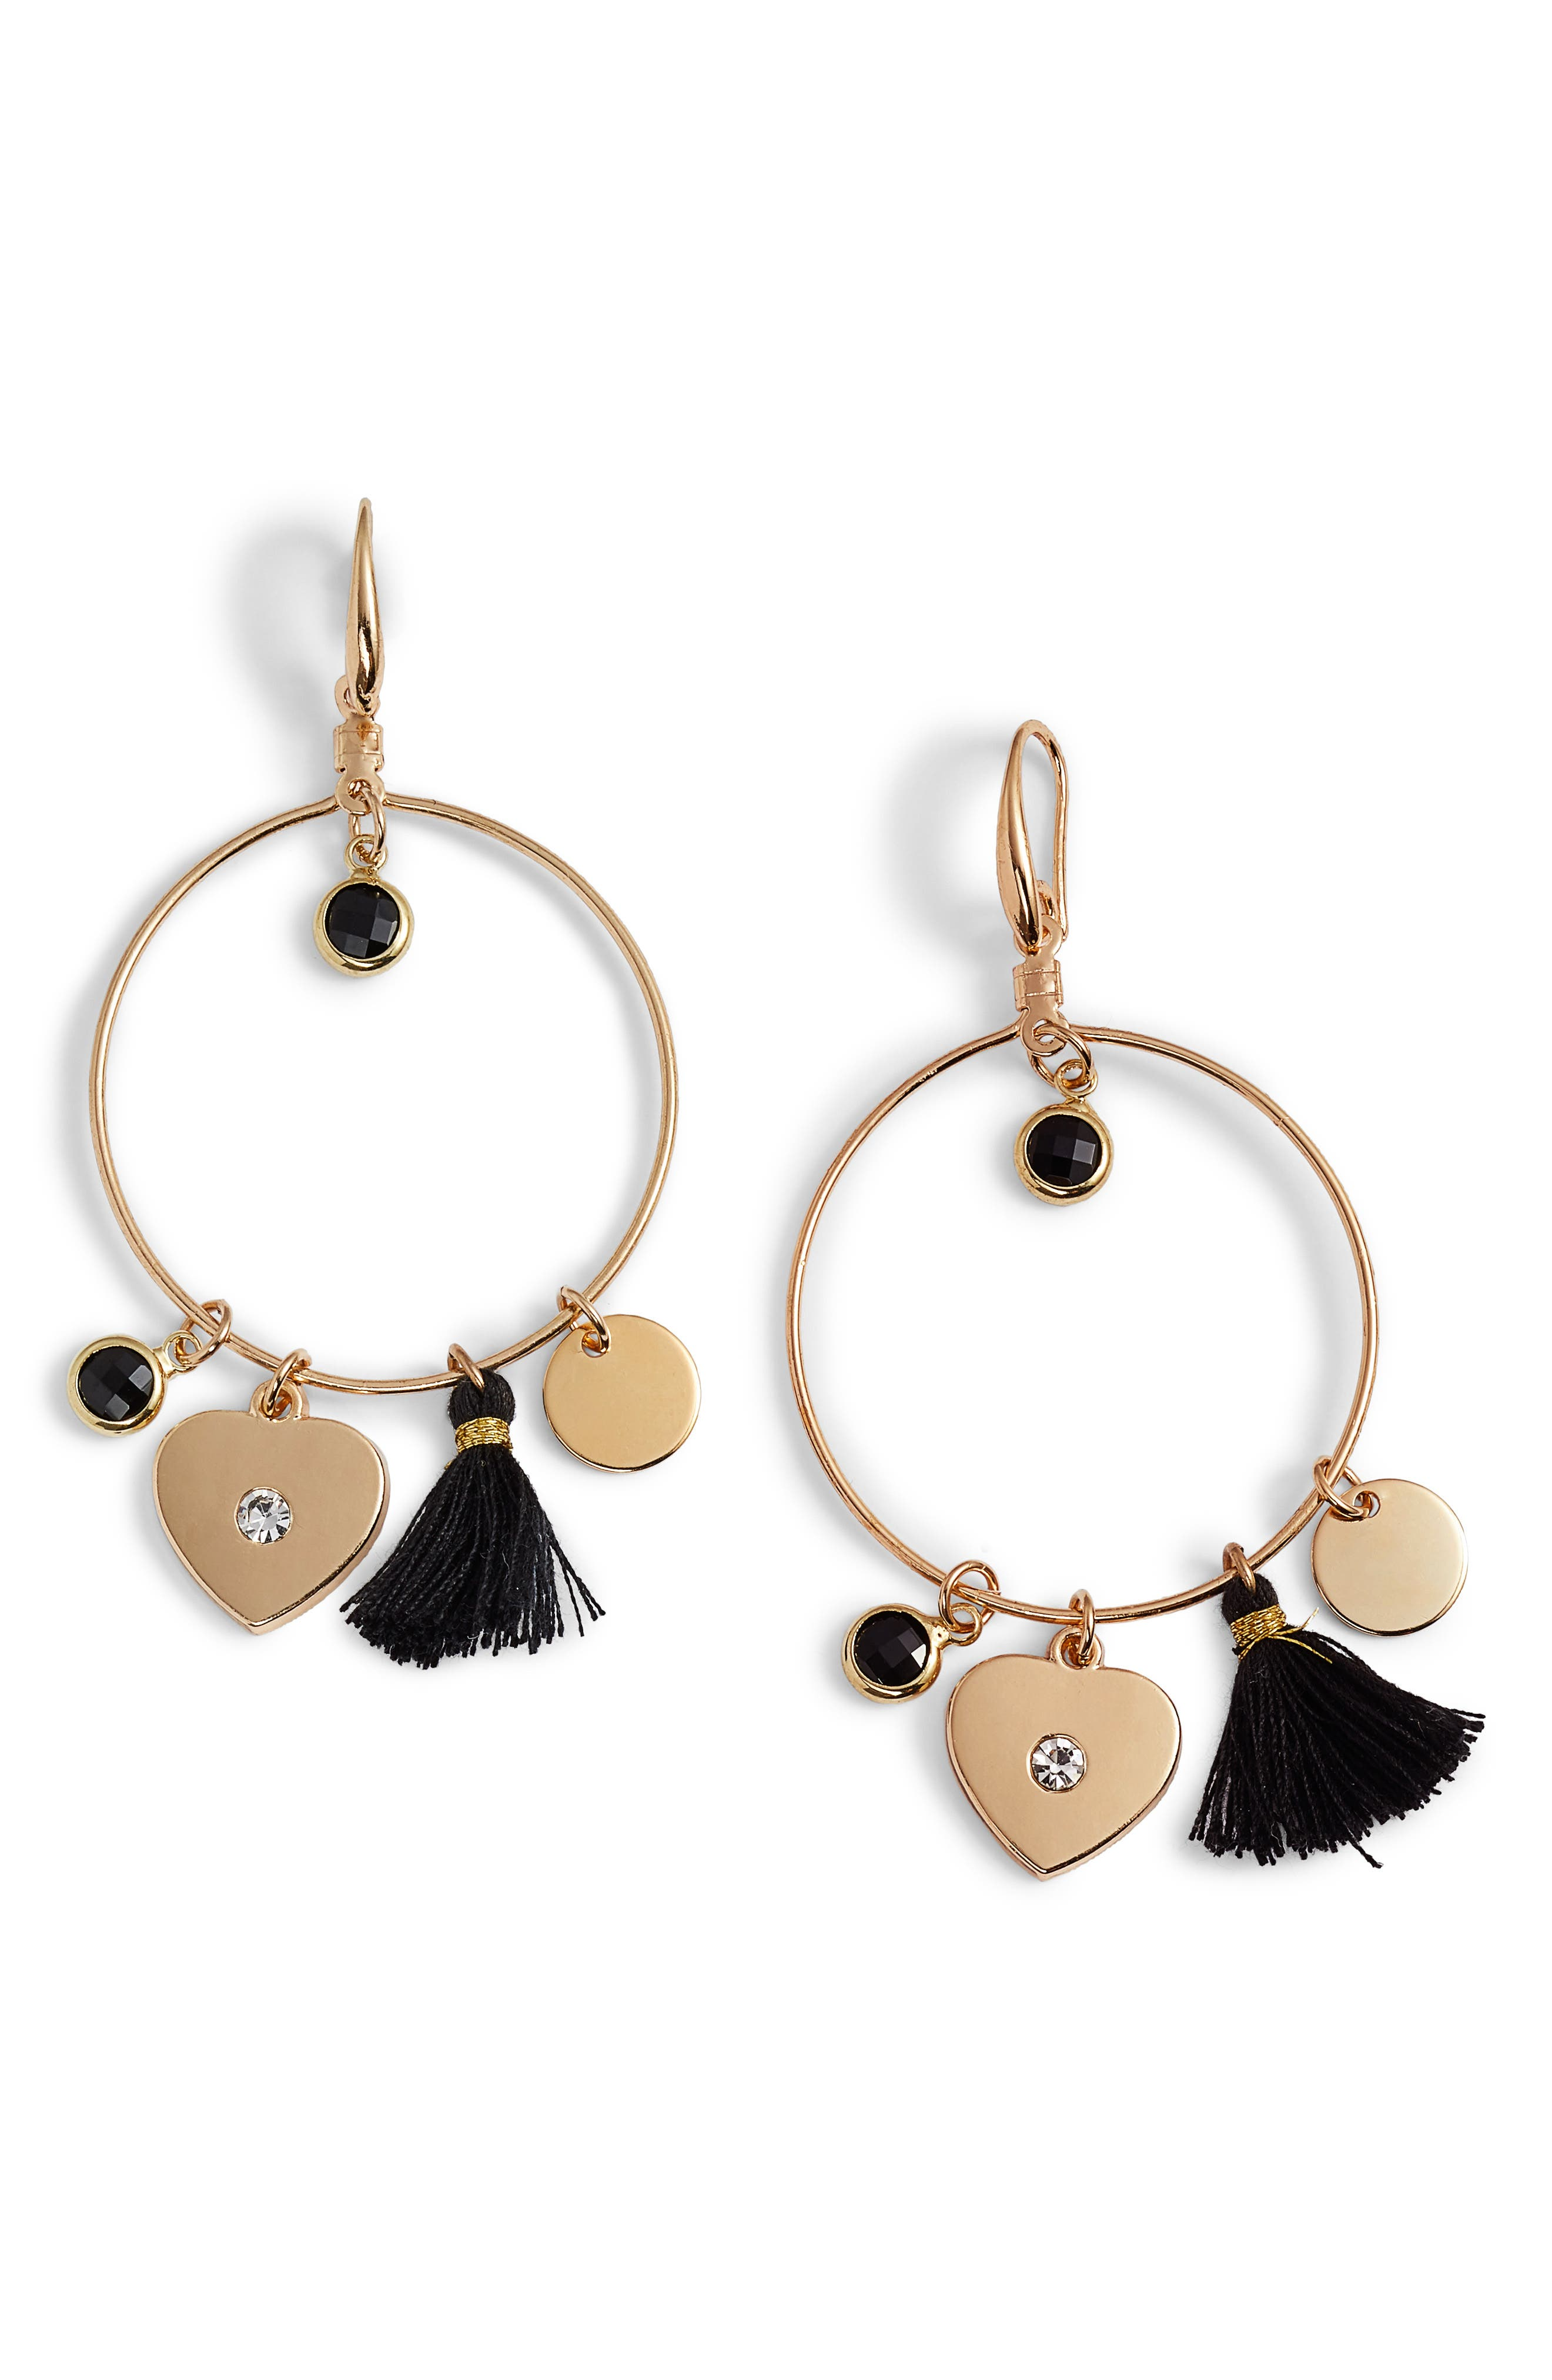 Samantha Tassel & Charm Hoop Earrings,                         Main,                         color,